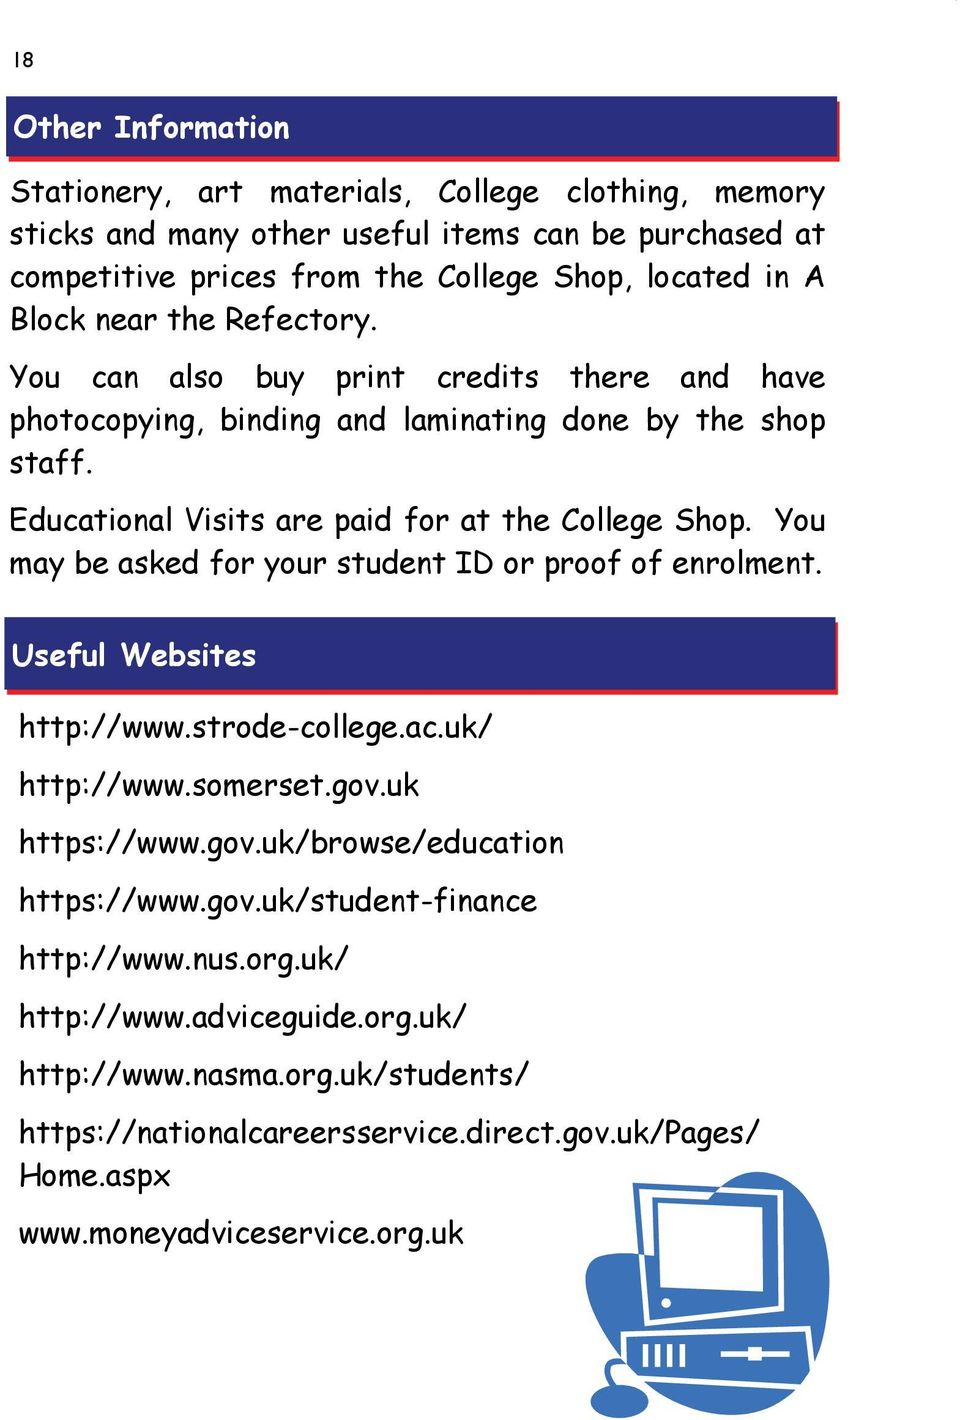 You may be asked for your student ID or proof of enrolment. Useful Websites http://www.strode-college.ac.uk/ http://www.somerset.gov.uk https://www.gov.uk/browse/education https://www.gov.uk/student-finance http://www.